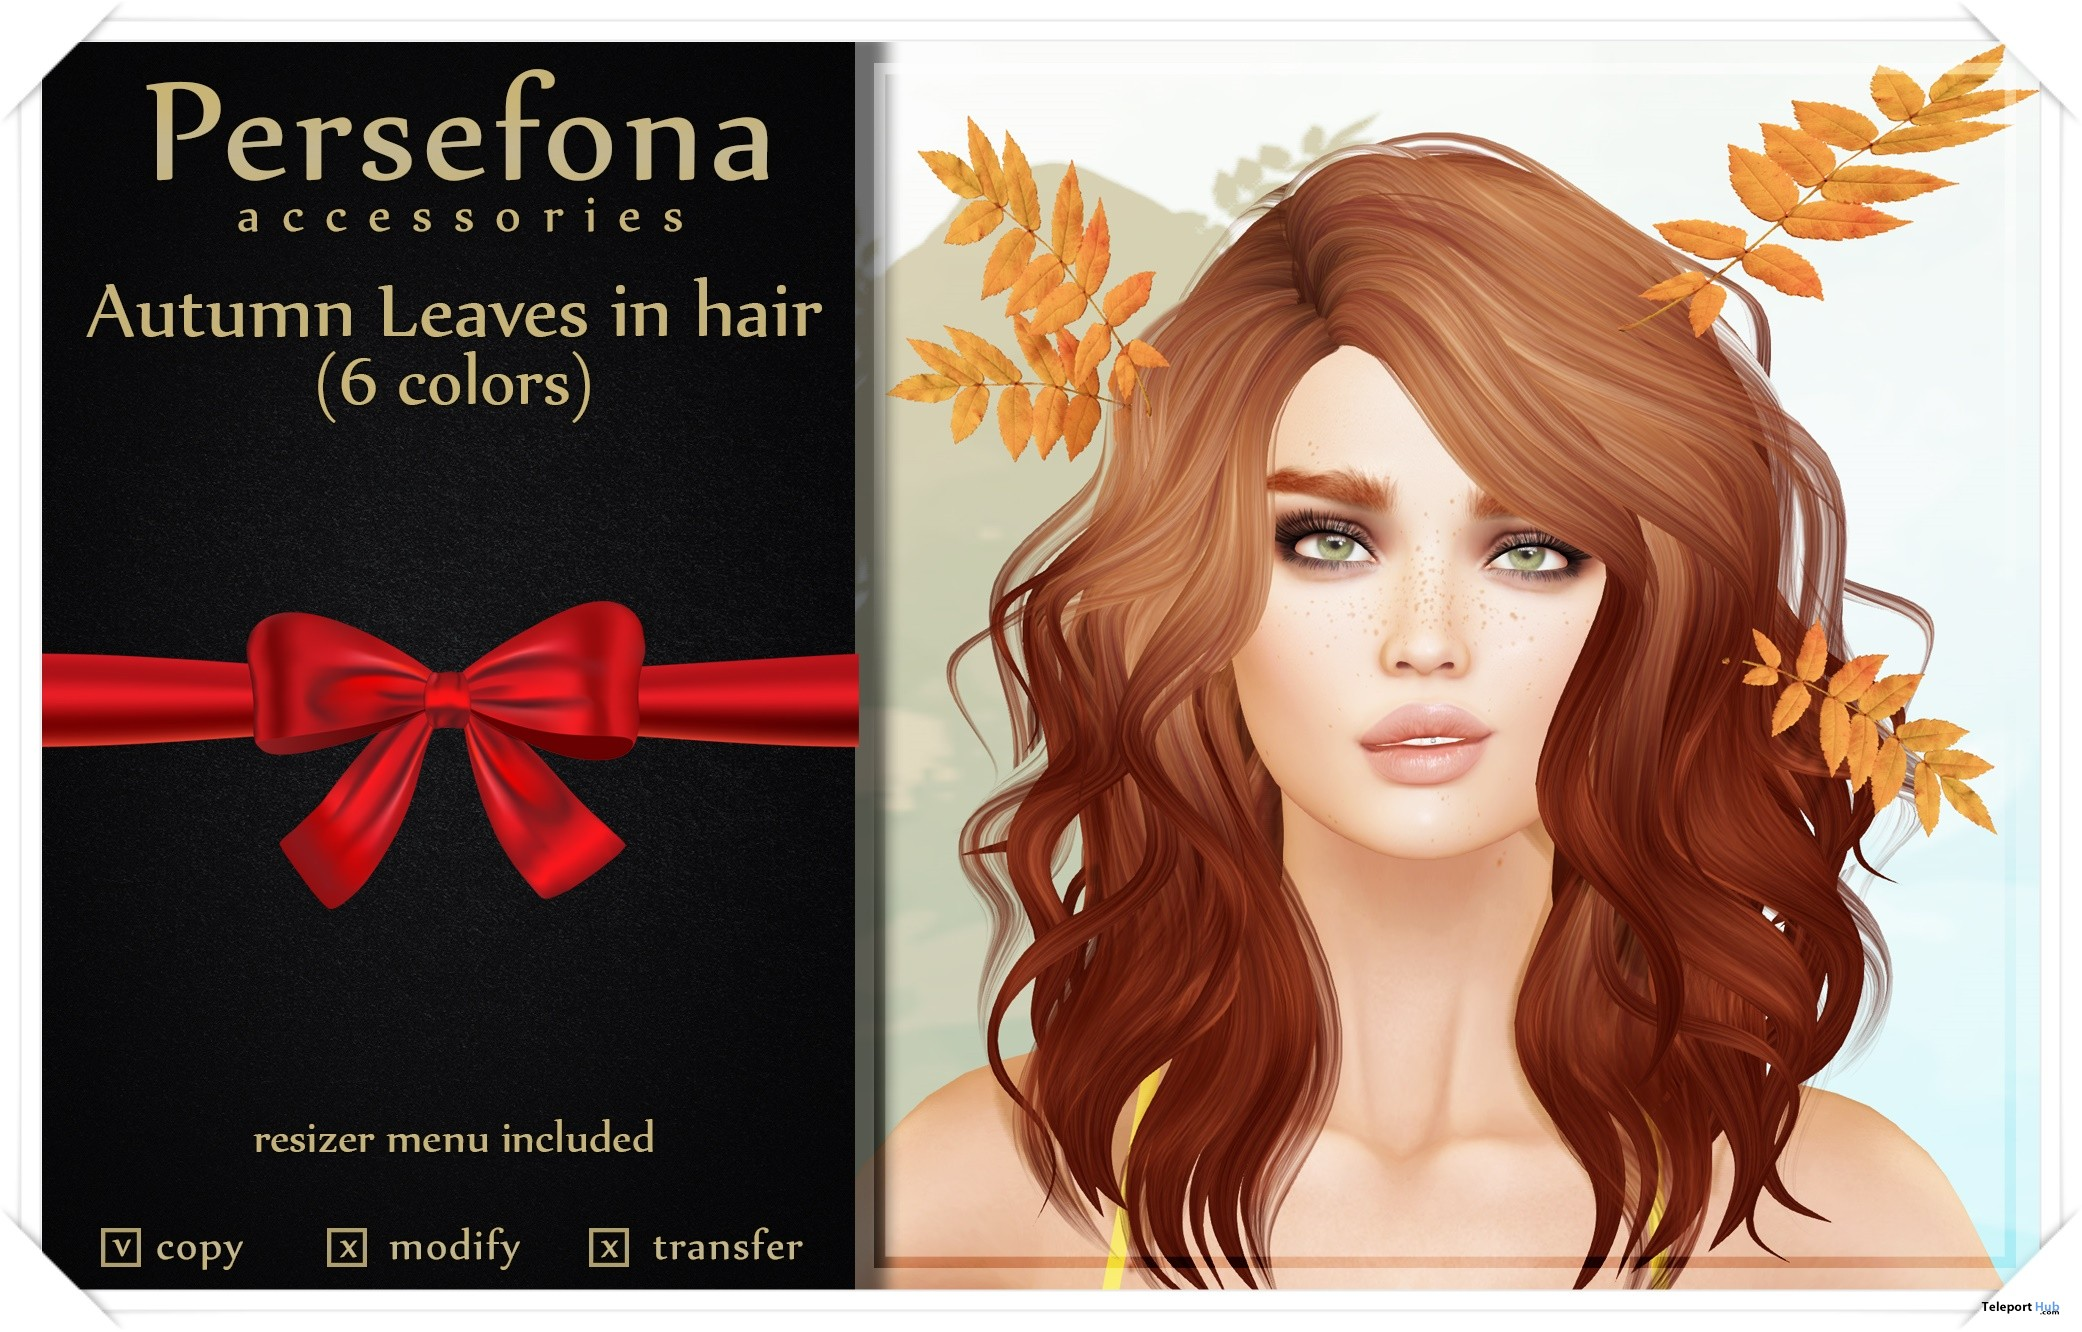 Autumn Leaves In Hair October 2017 Gift by Persefona - Teleport Hub - teleporthub.com